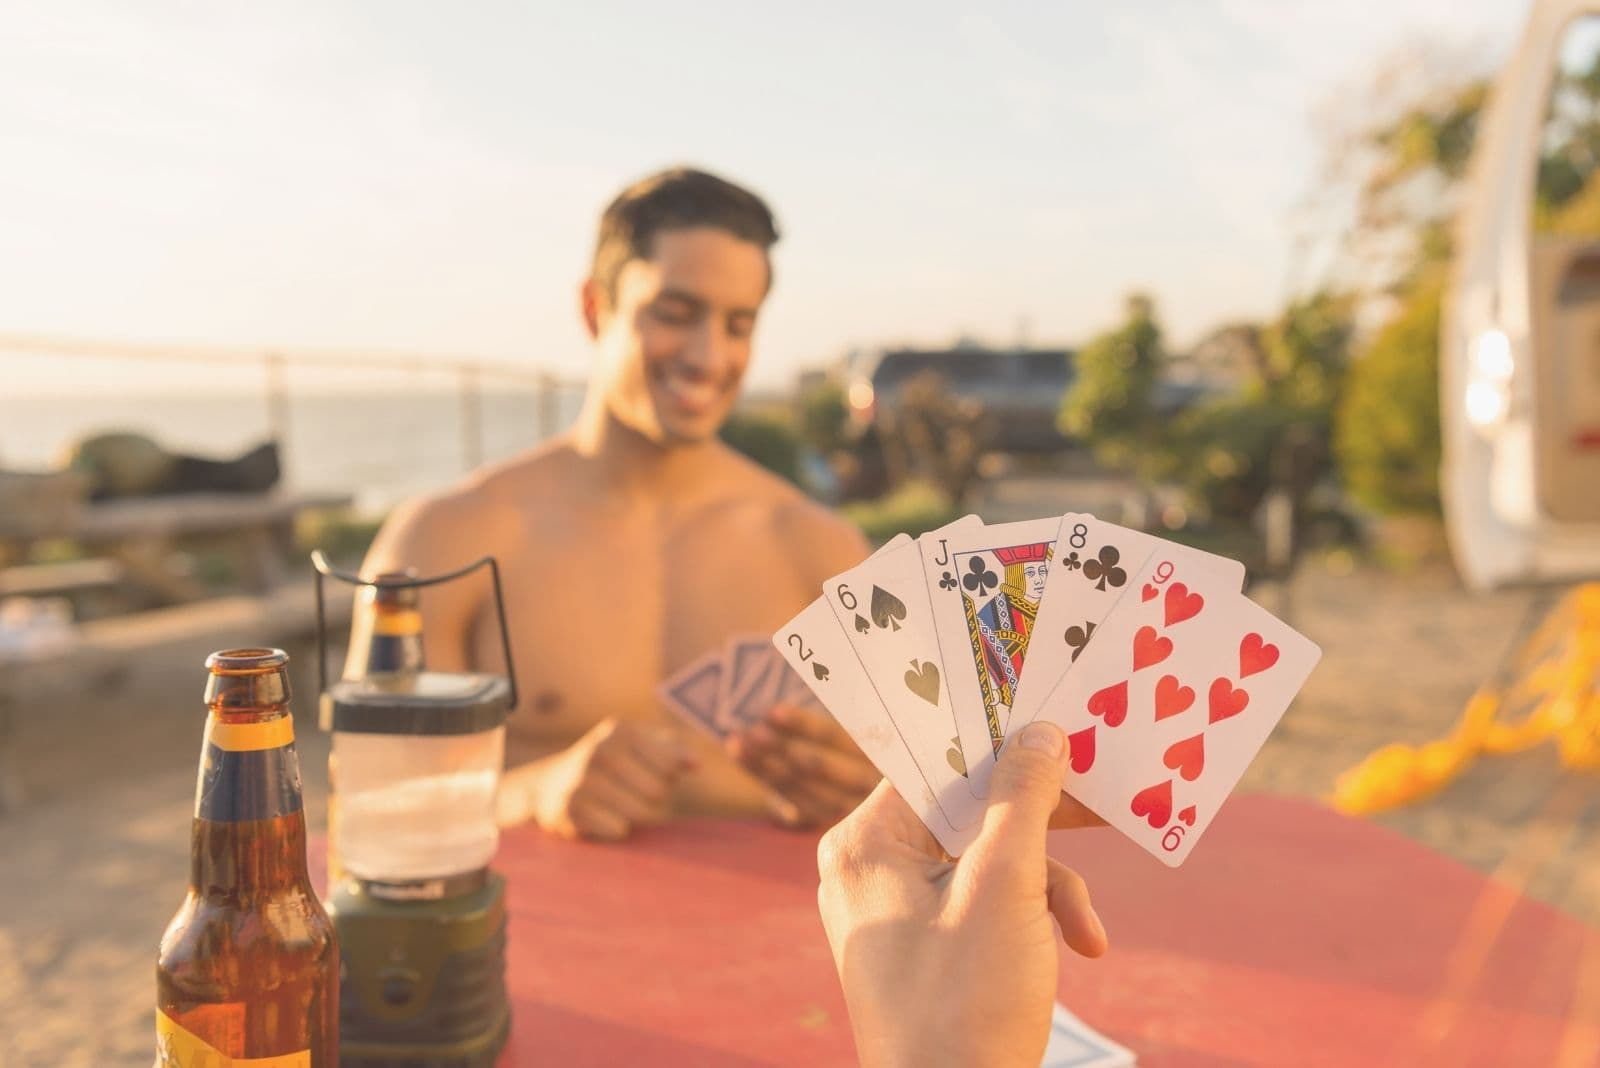 shirtless man playing cards outdoors with his girlfriend in cropped image